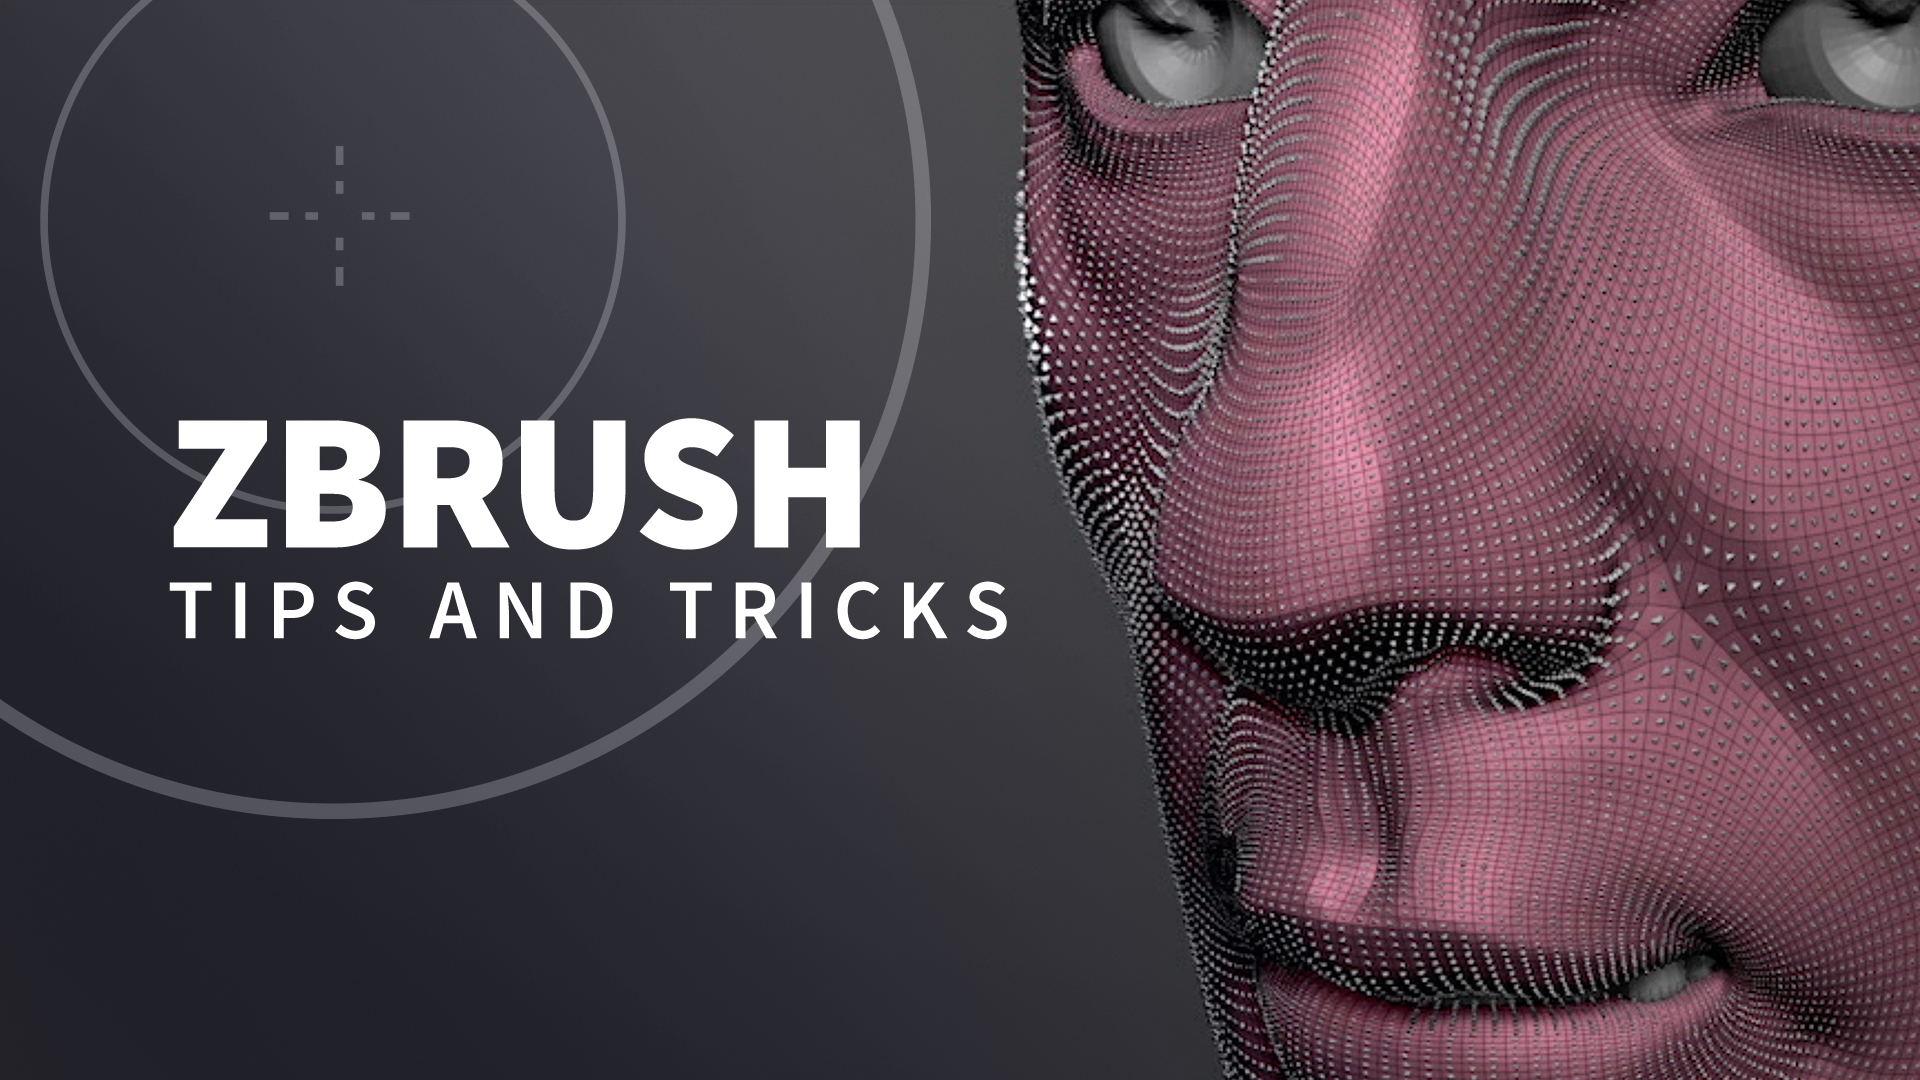 Transpose tips: ZBrush: Tips and Tricks